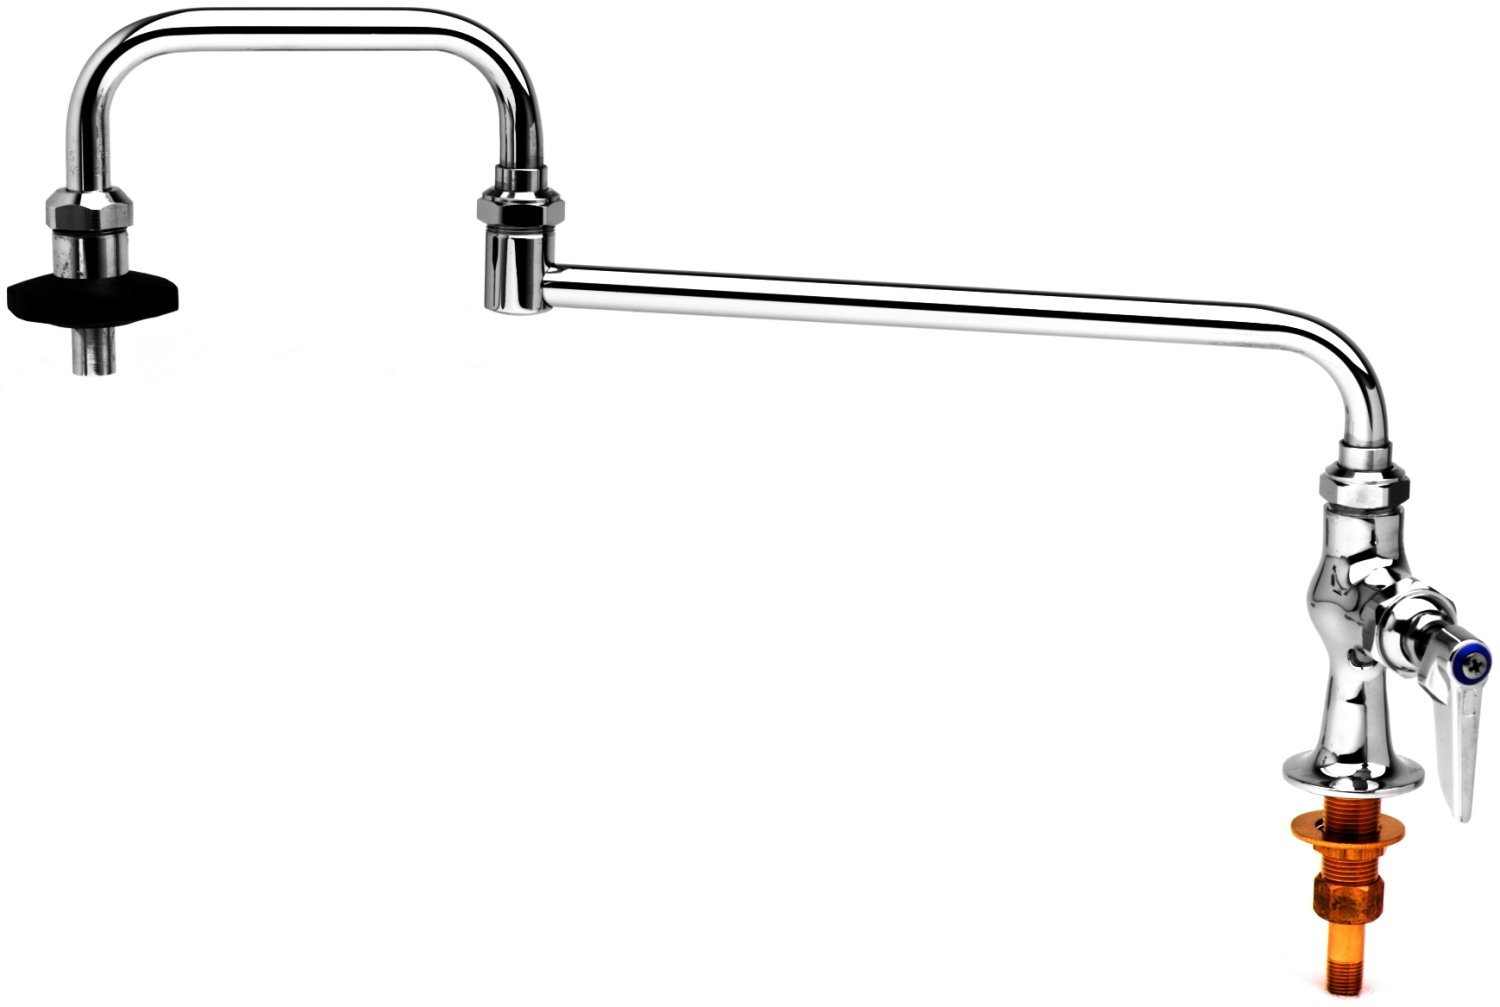 T&S Brass B-0591, Pot Filler with Deck Mount, Single Control, 24-Inch Double Joint Nozzle and Insulated On-Off Control by T&S Brass B007L4N0R8